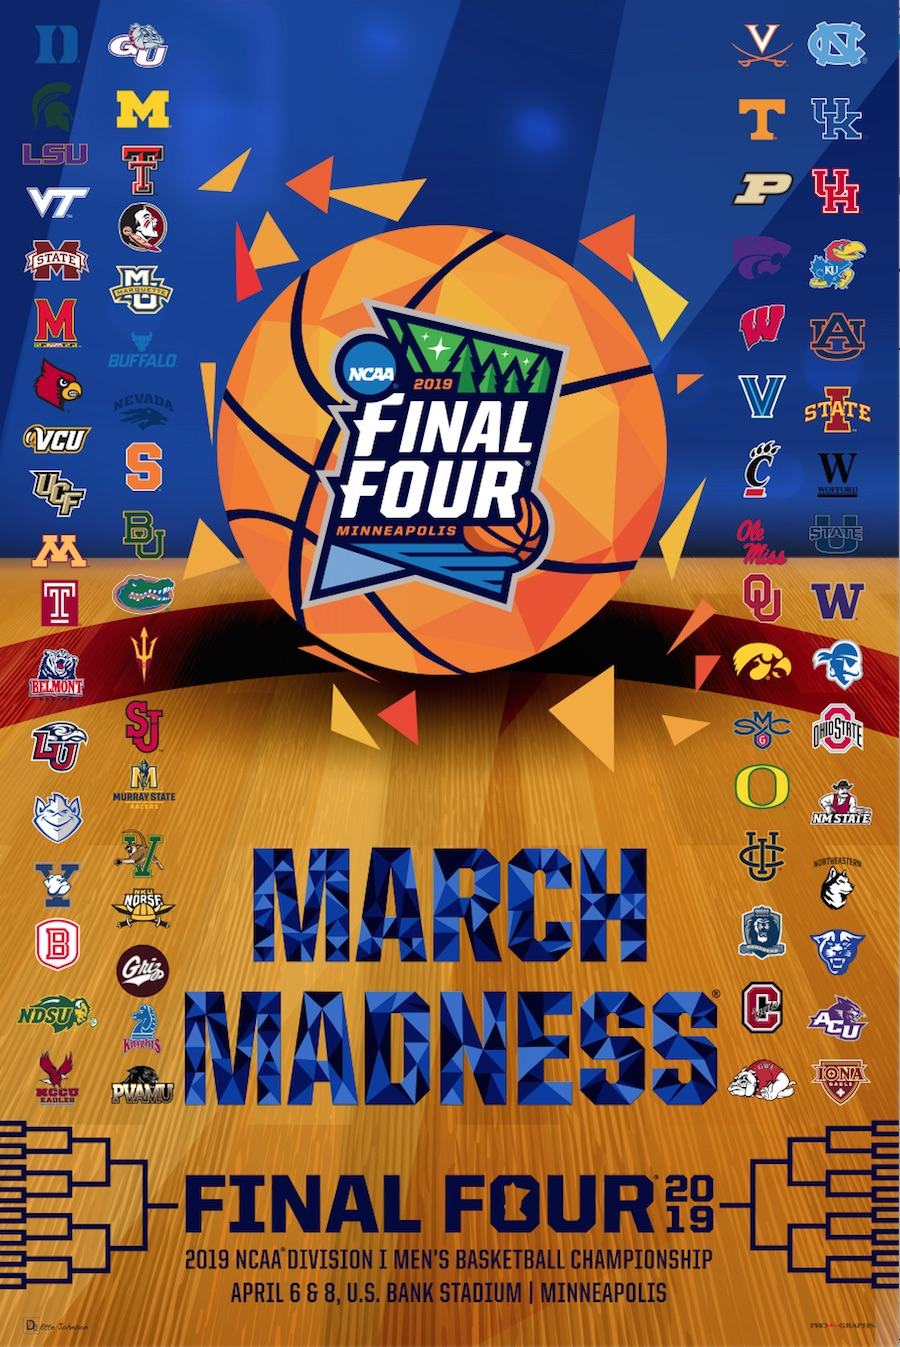 photograph regarding Printable College Logos identified as Data above 2019 Formal NCAA Last 4 March Insanity Basketball Personnel Emblems Print Poster